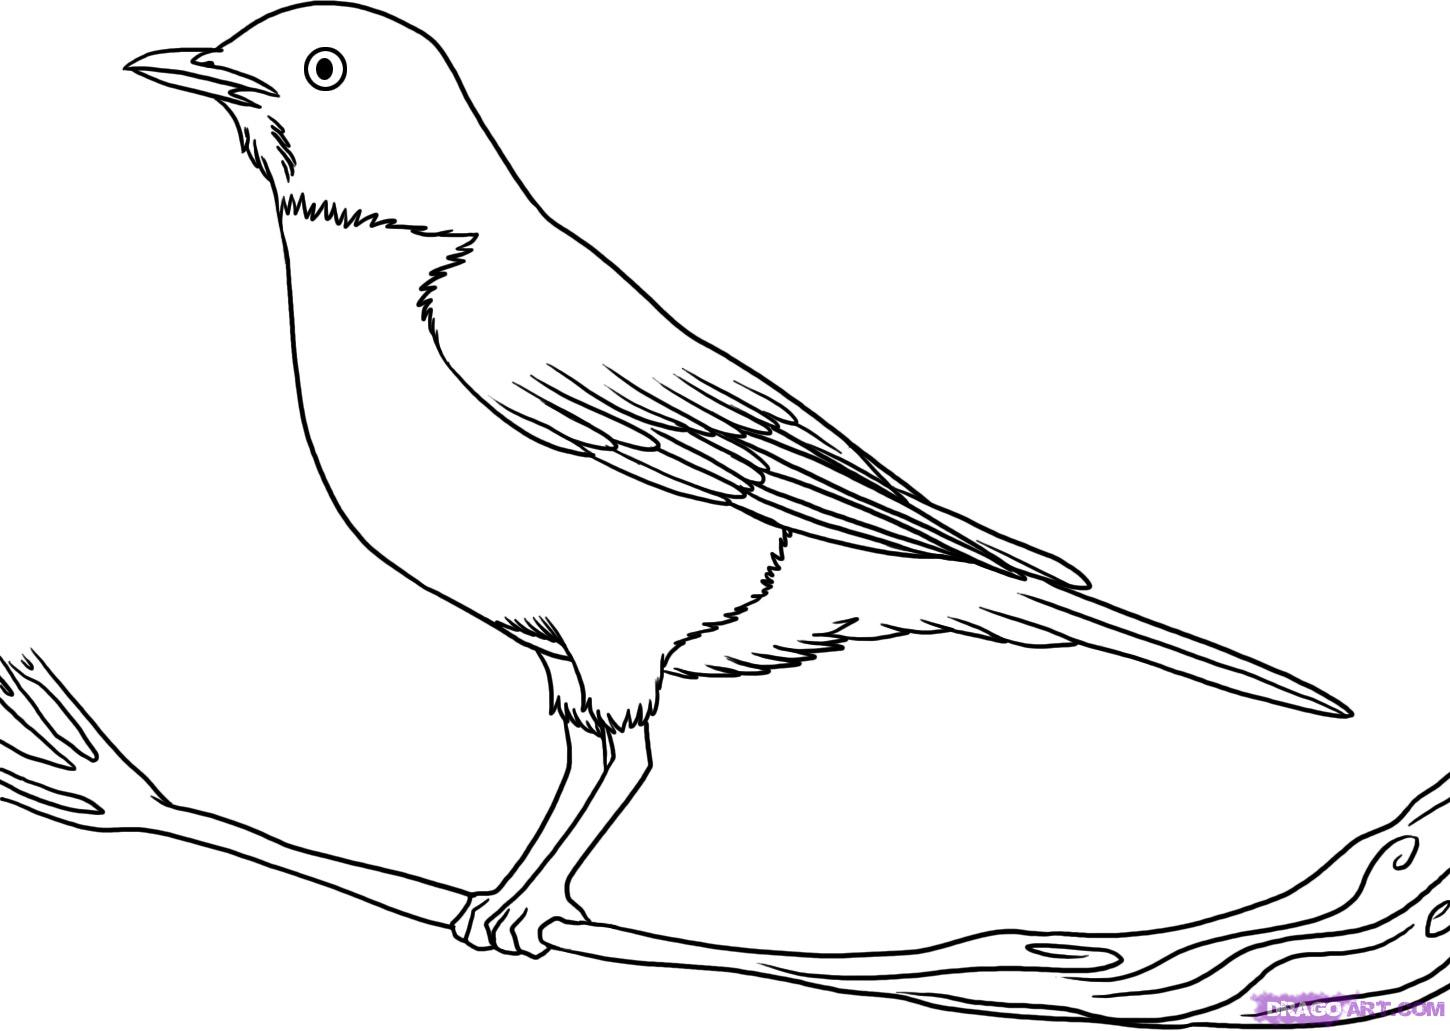 1450x1031 Sketch Image Of Bird Sketch Birds Drawing How To Draw A Flying